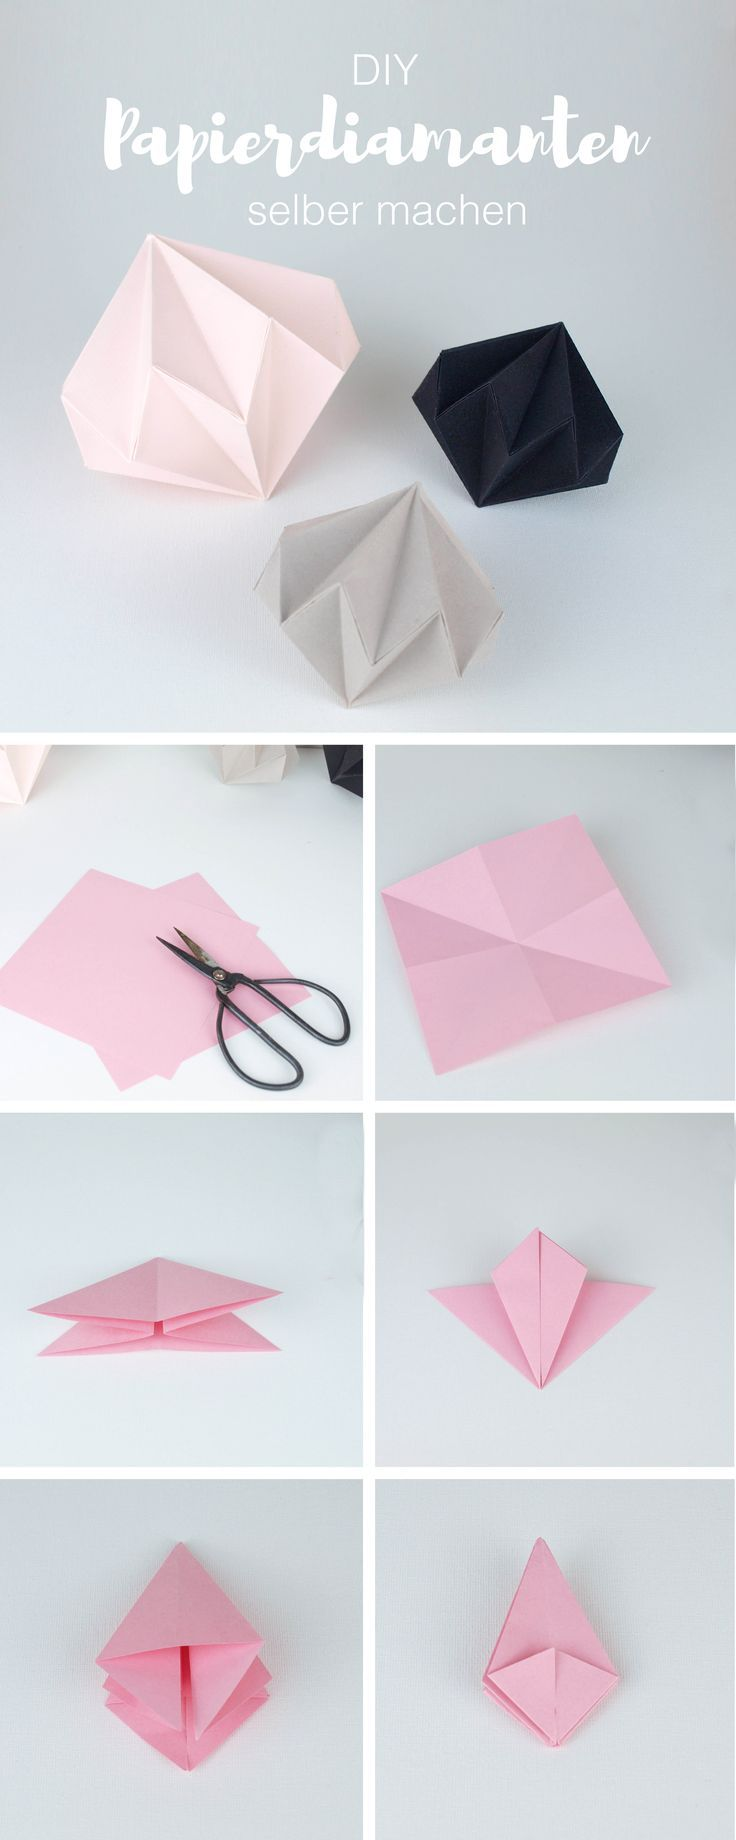 Photo of DIY decoration: make paper diamonds yourself with simple folding instructions